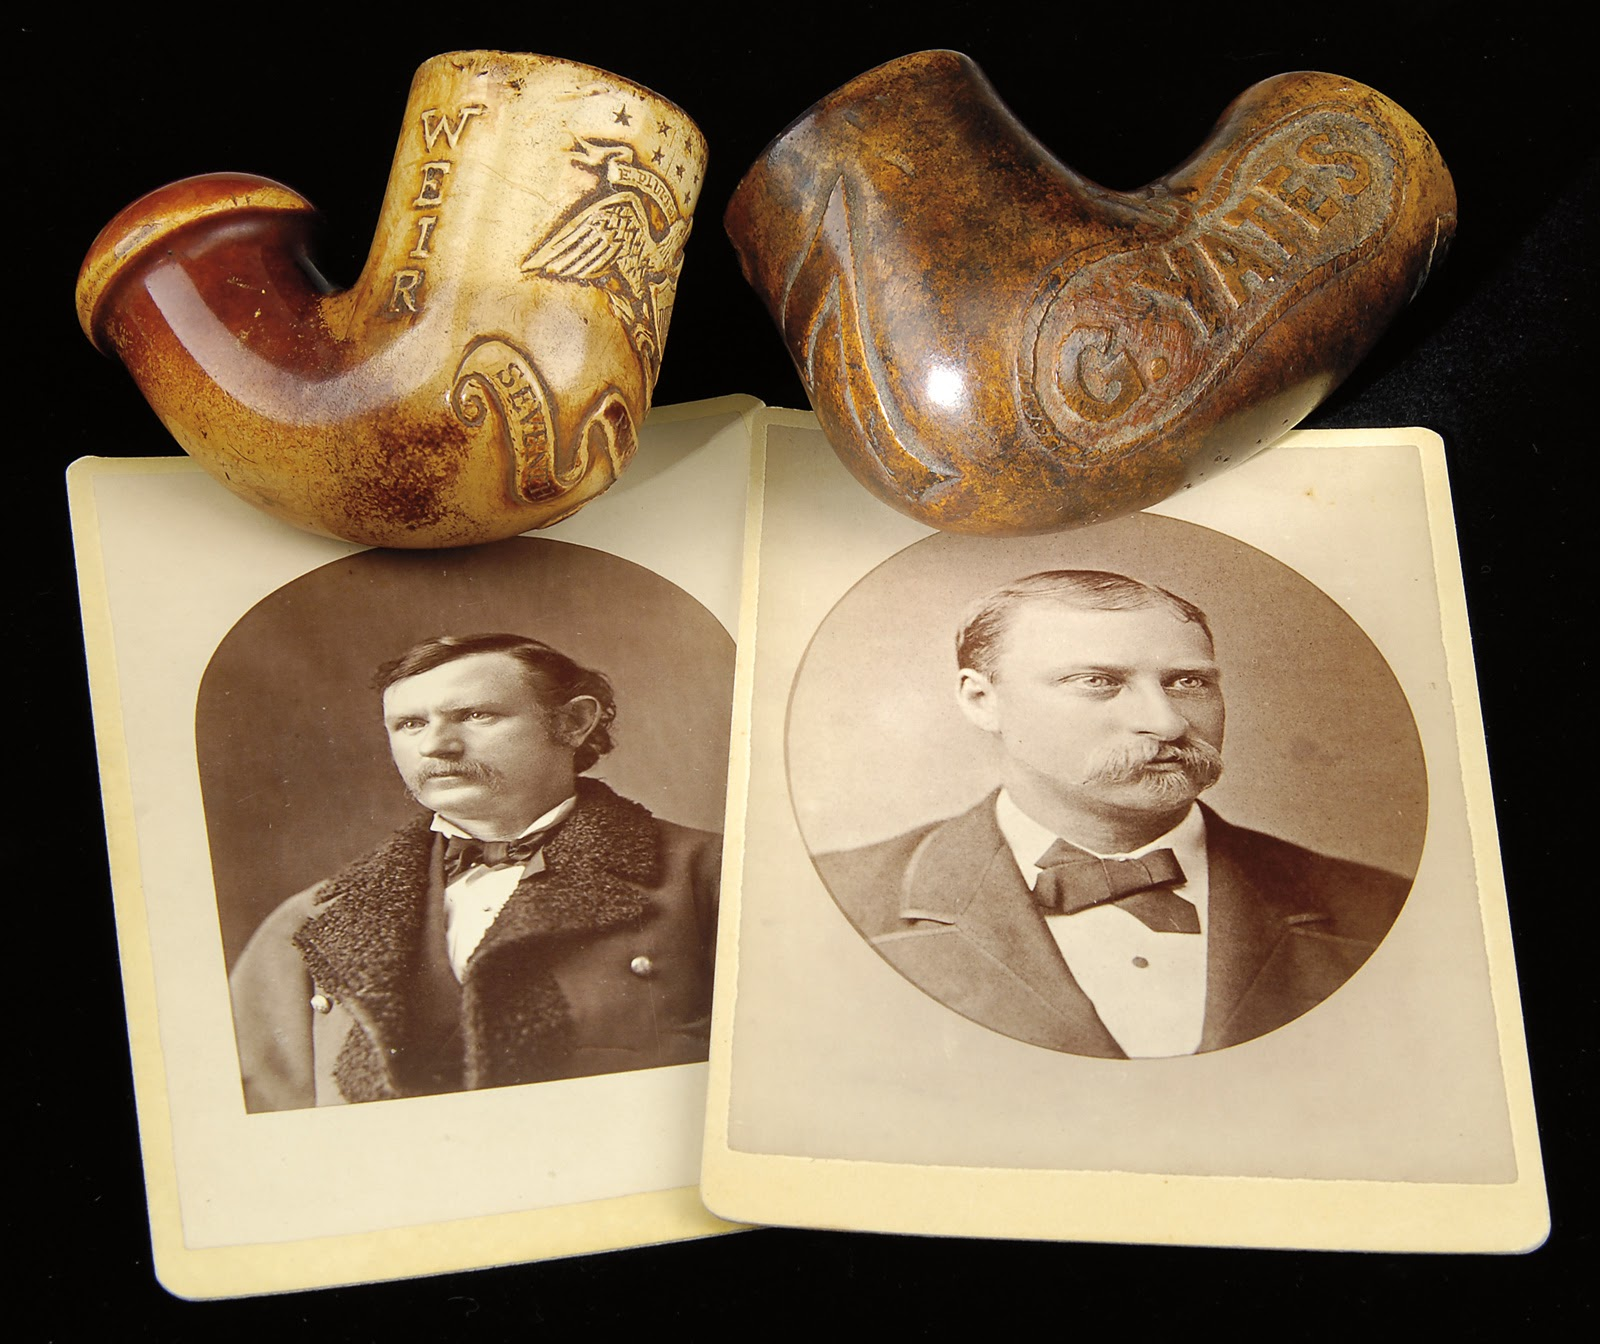 Captain Thomas Weir Carved Meerschaum Smoking Pipe Bowl and Captain  George Yates Carved Clay Smoking Pipe Bowl